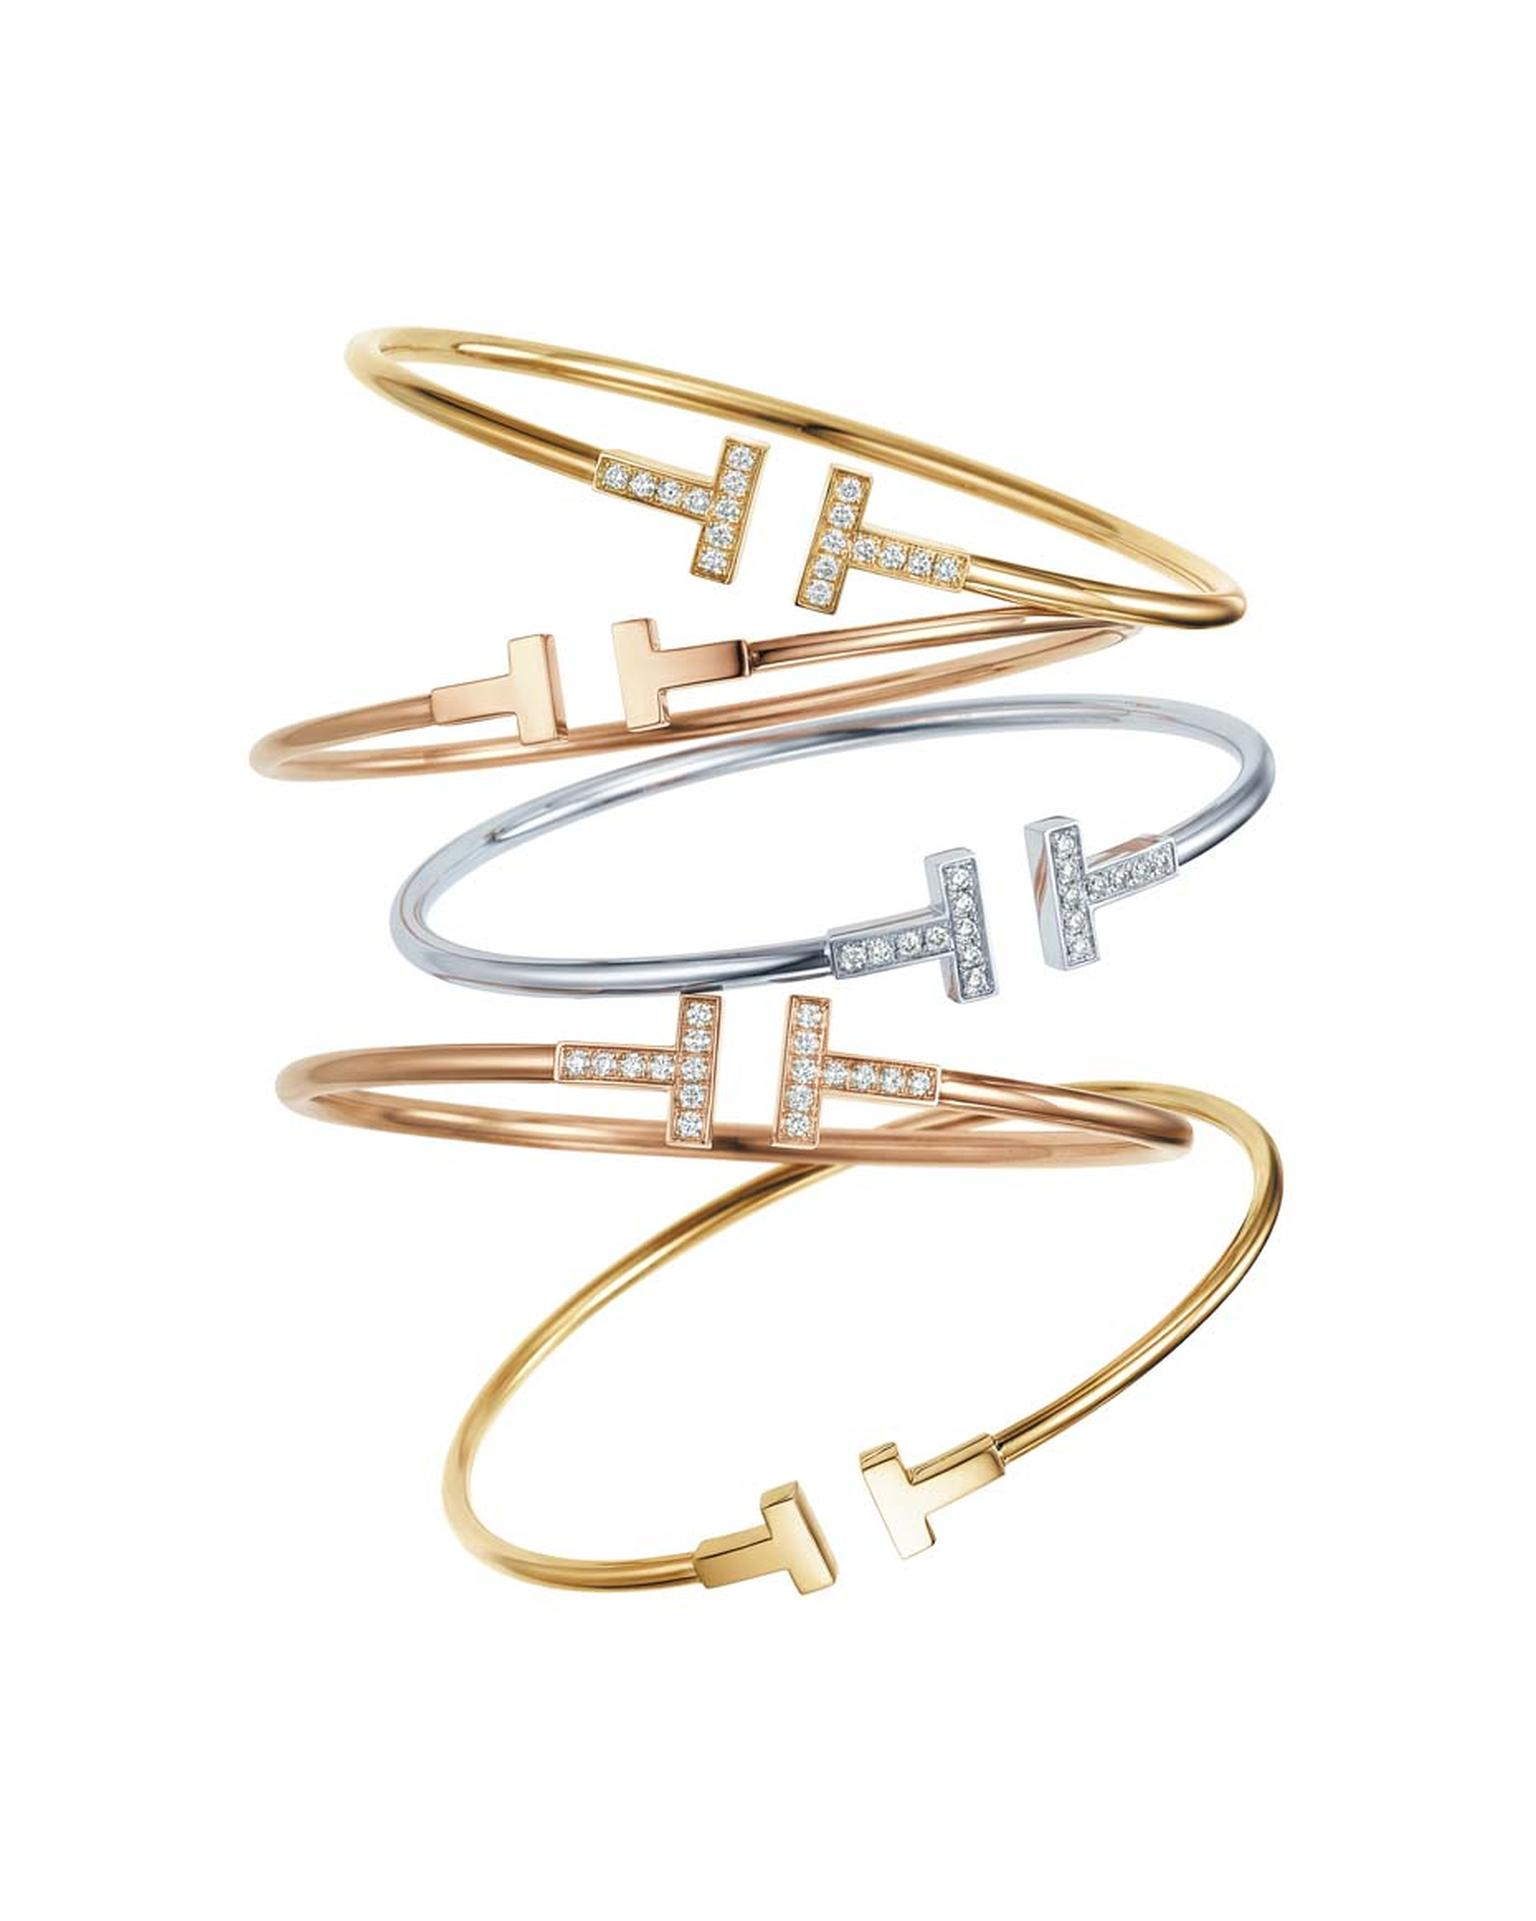 Tiffany and Co. Tiffany T collection wire bracelets in rose, yellow and white gold, as well as sterling silver. Some of the pieces are also embellished with diamonds, reminiscent of the twinkling lights of NYC.